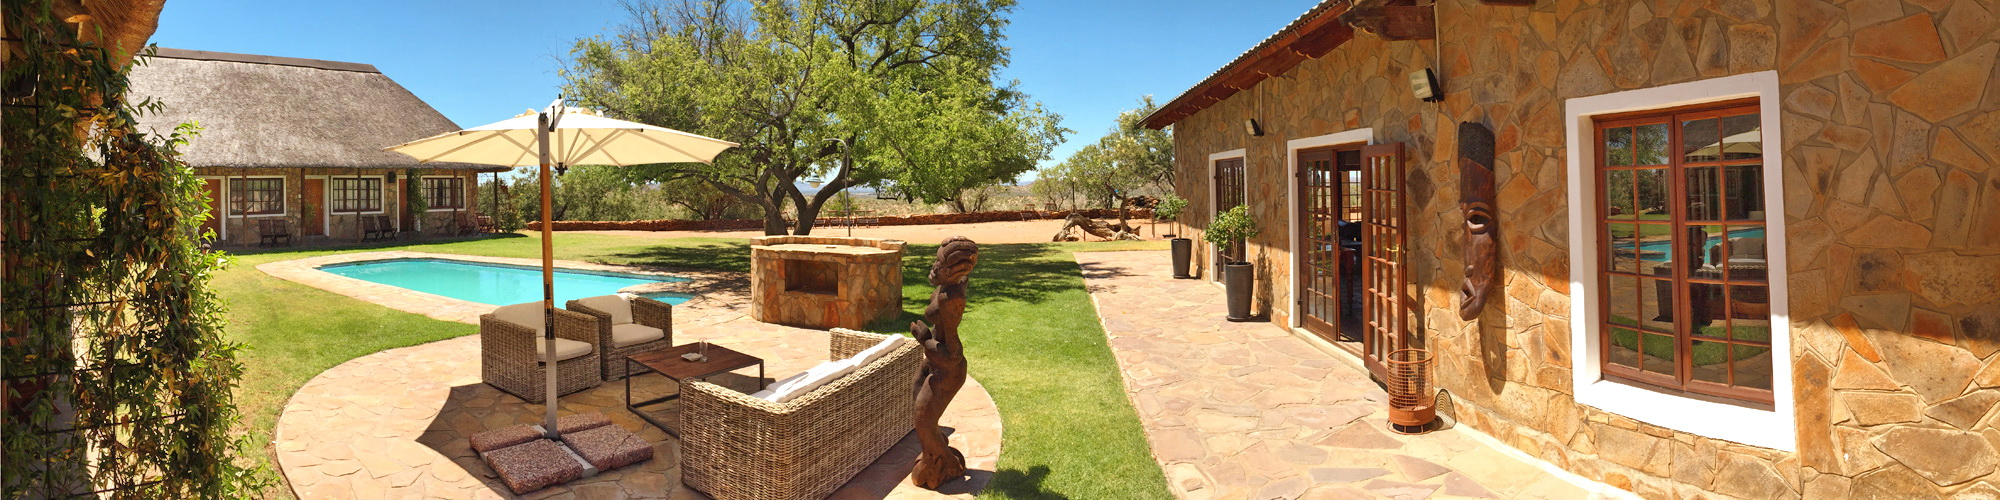 Windhoek Mountain Lodge details & rates